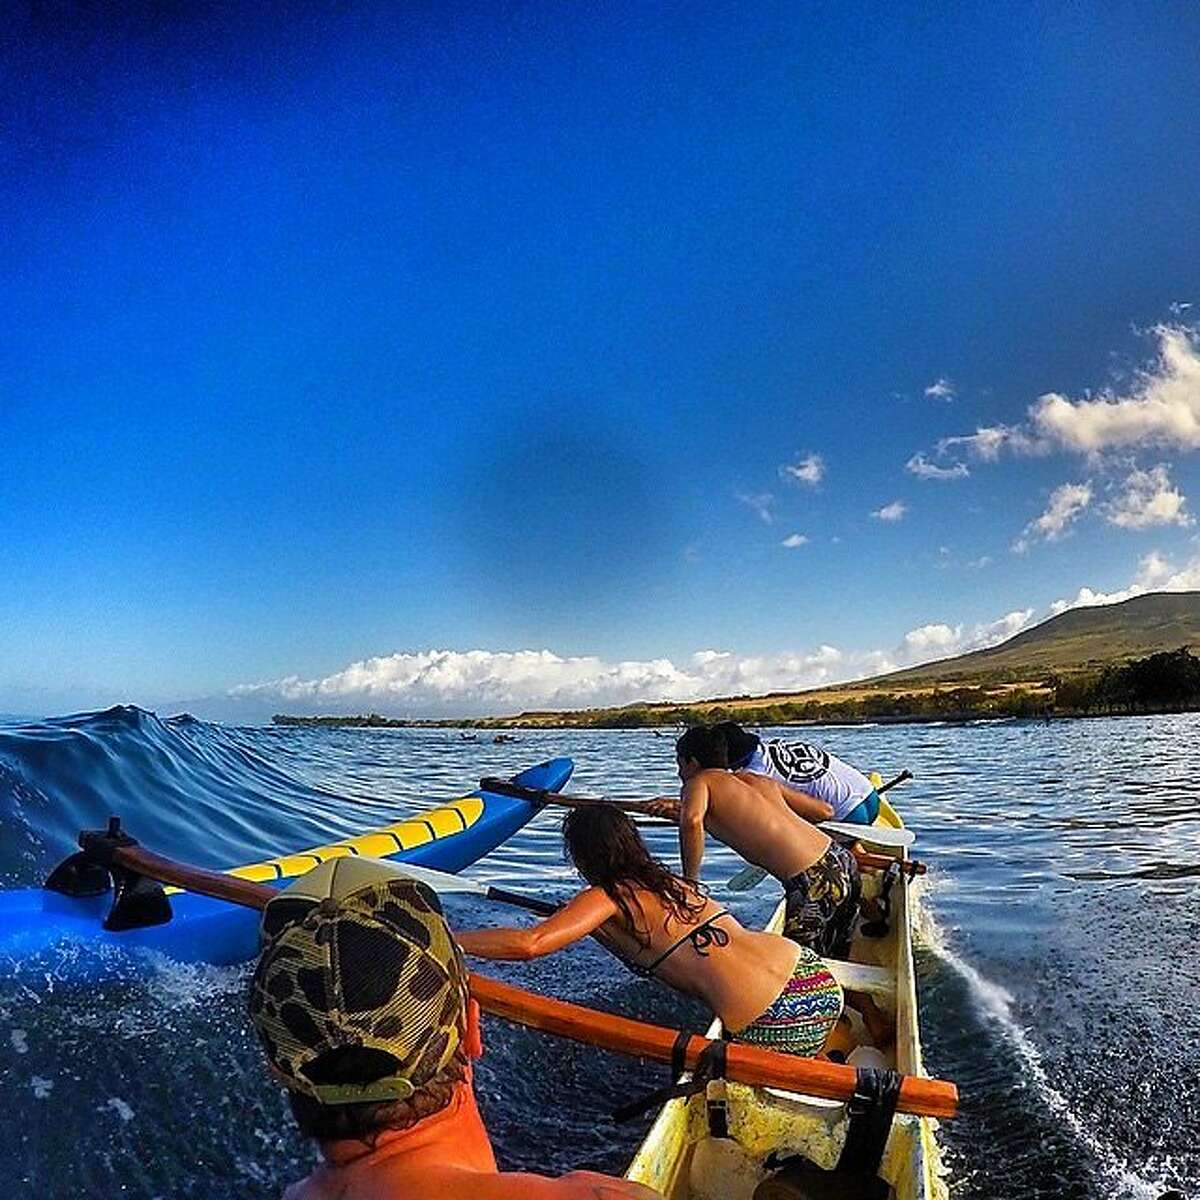 Although canoe surfing is an ancient sport in the islands, Maui's Hawaiian Paddle Sports is the first outfitter in the state to offer outrigger canoe surfing excursions.